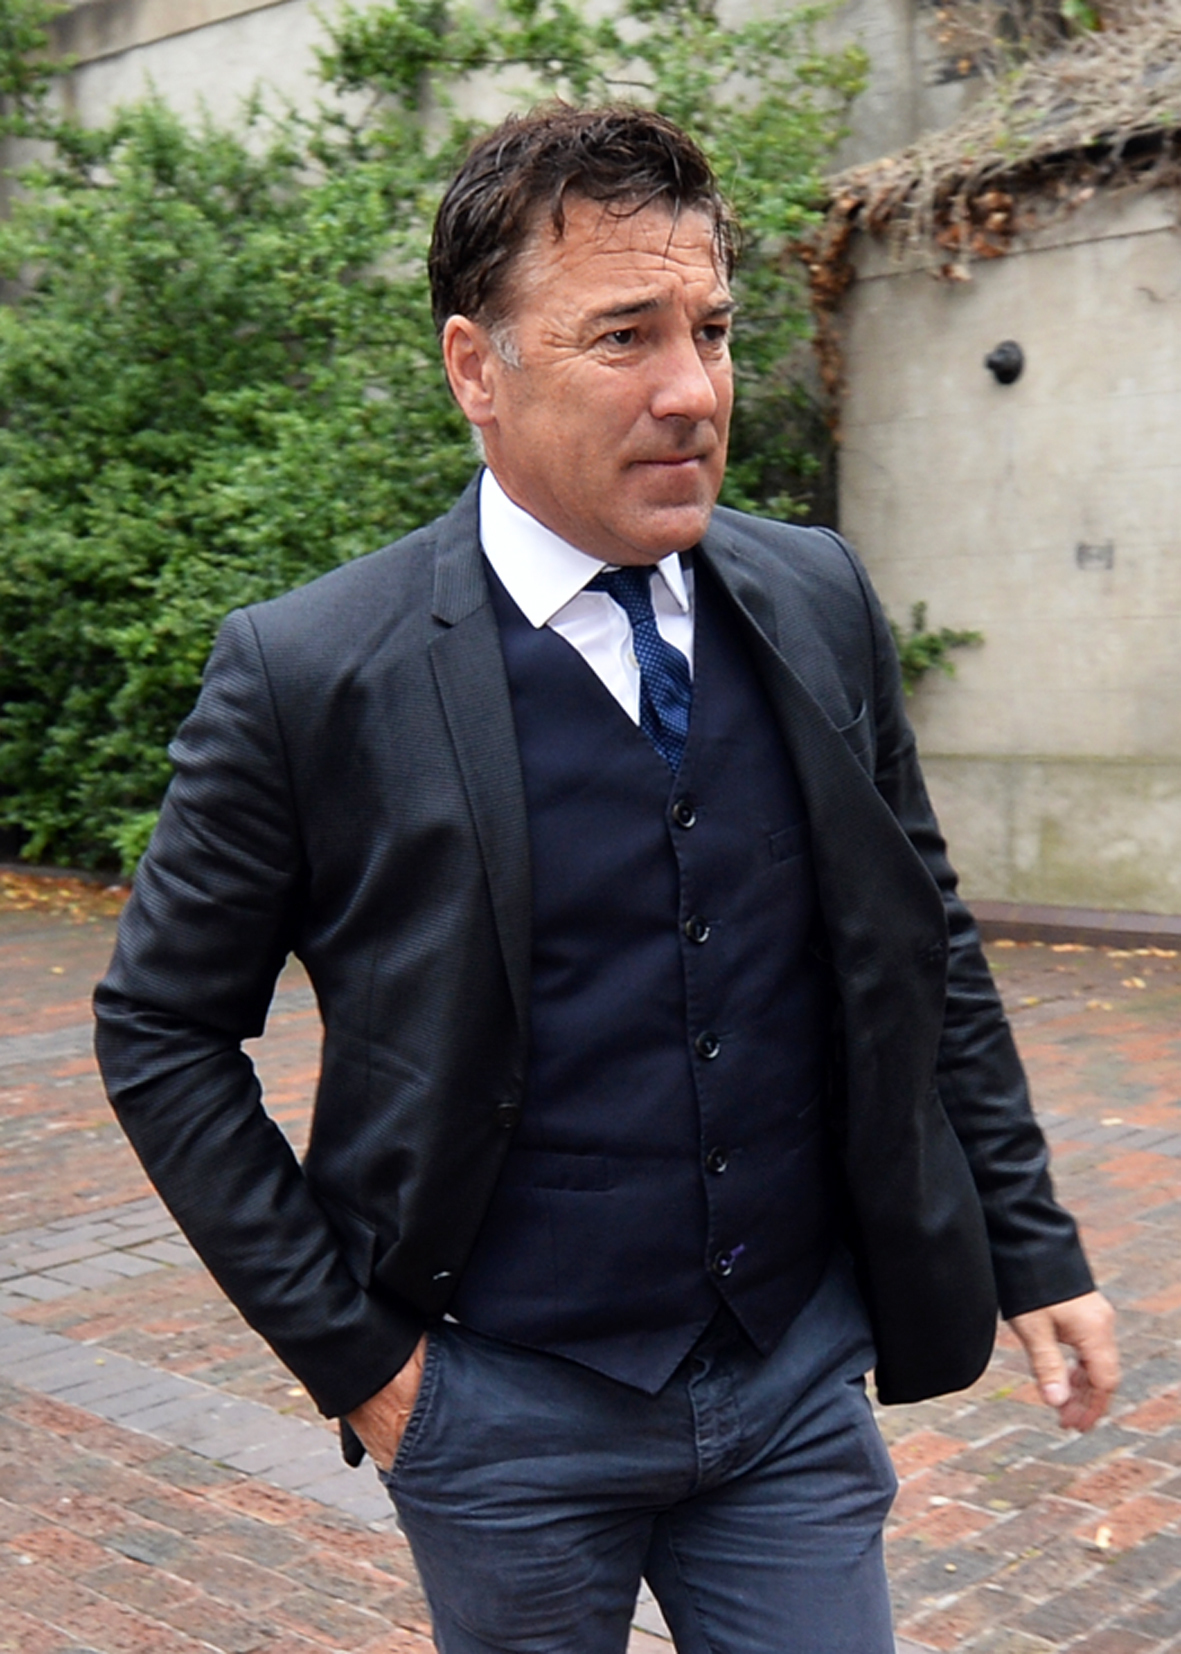 Ex-Wales international Dean Saunders jailed for failing to provide breath sample